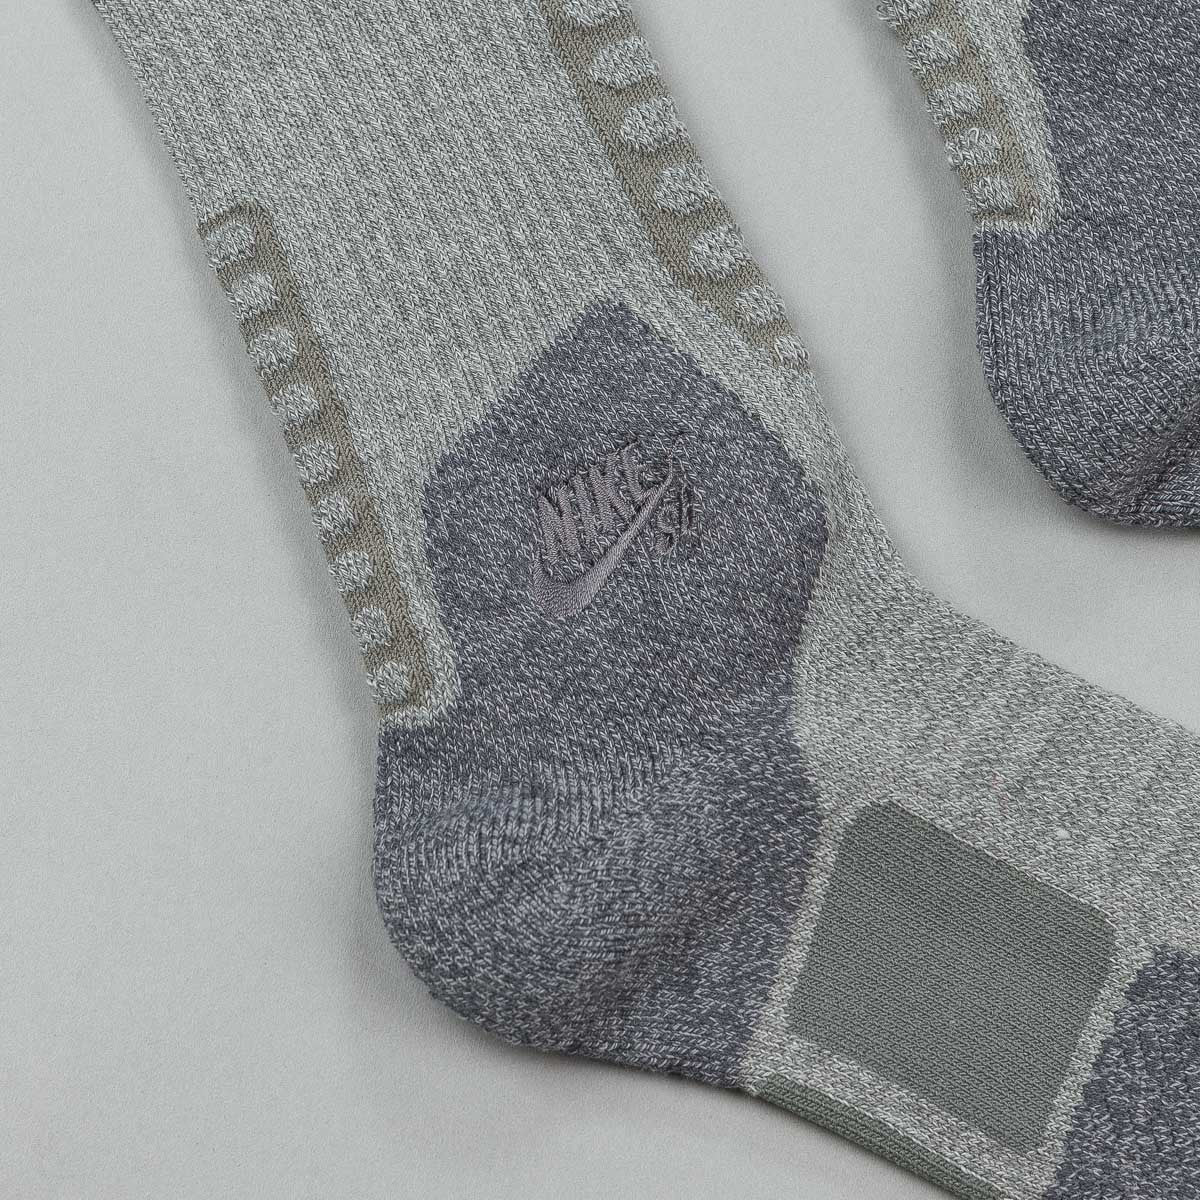 Nike SB Elite Skate 2.0 Crew Socks - Dark Grey / Anthracite